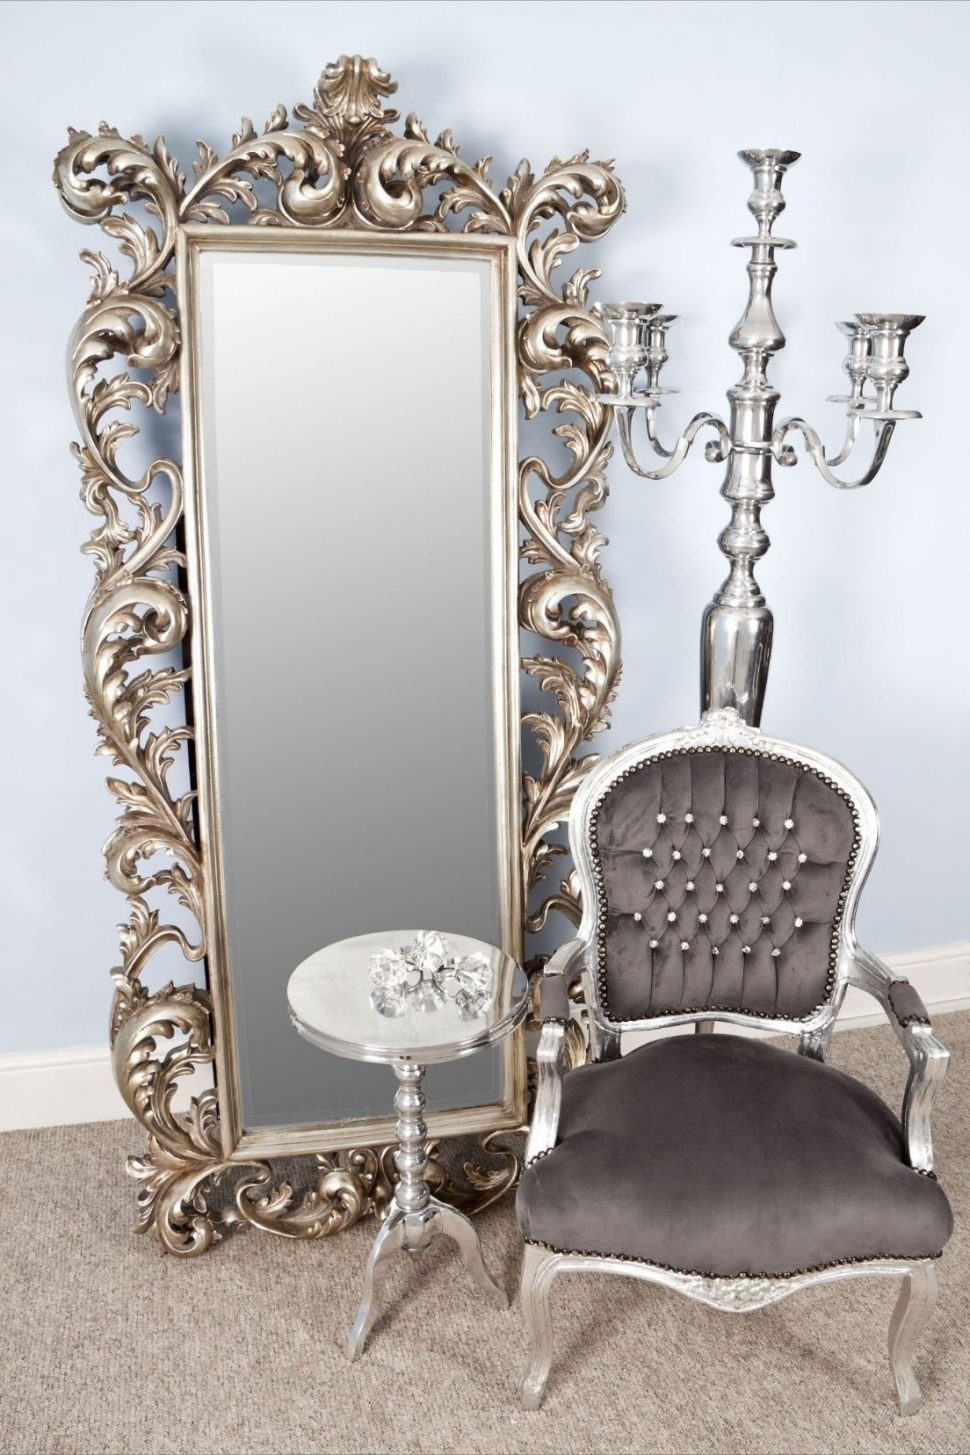 Bedroom Furniture Window Frame Mirror Antique Wall Mirrors Wall In Antique Dressing Mirror Full Length (View 11 of 15)